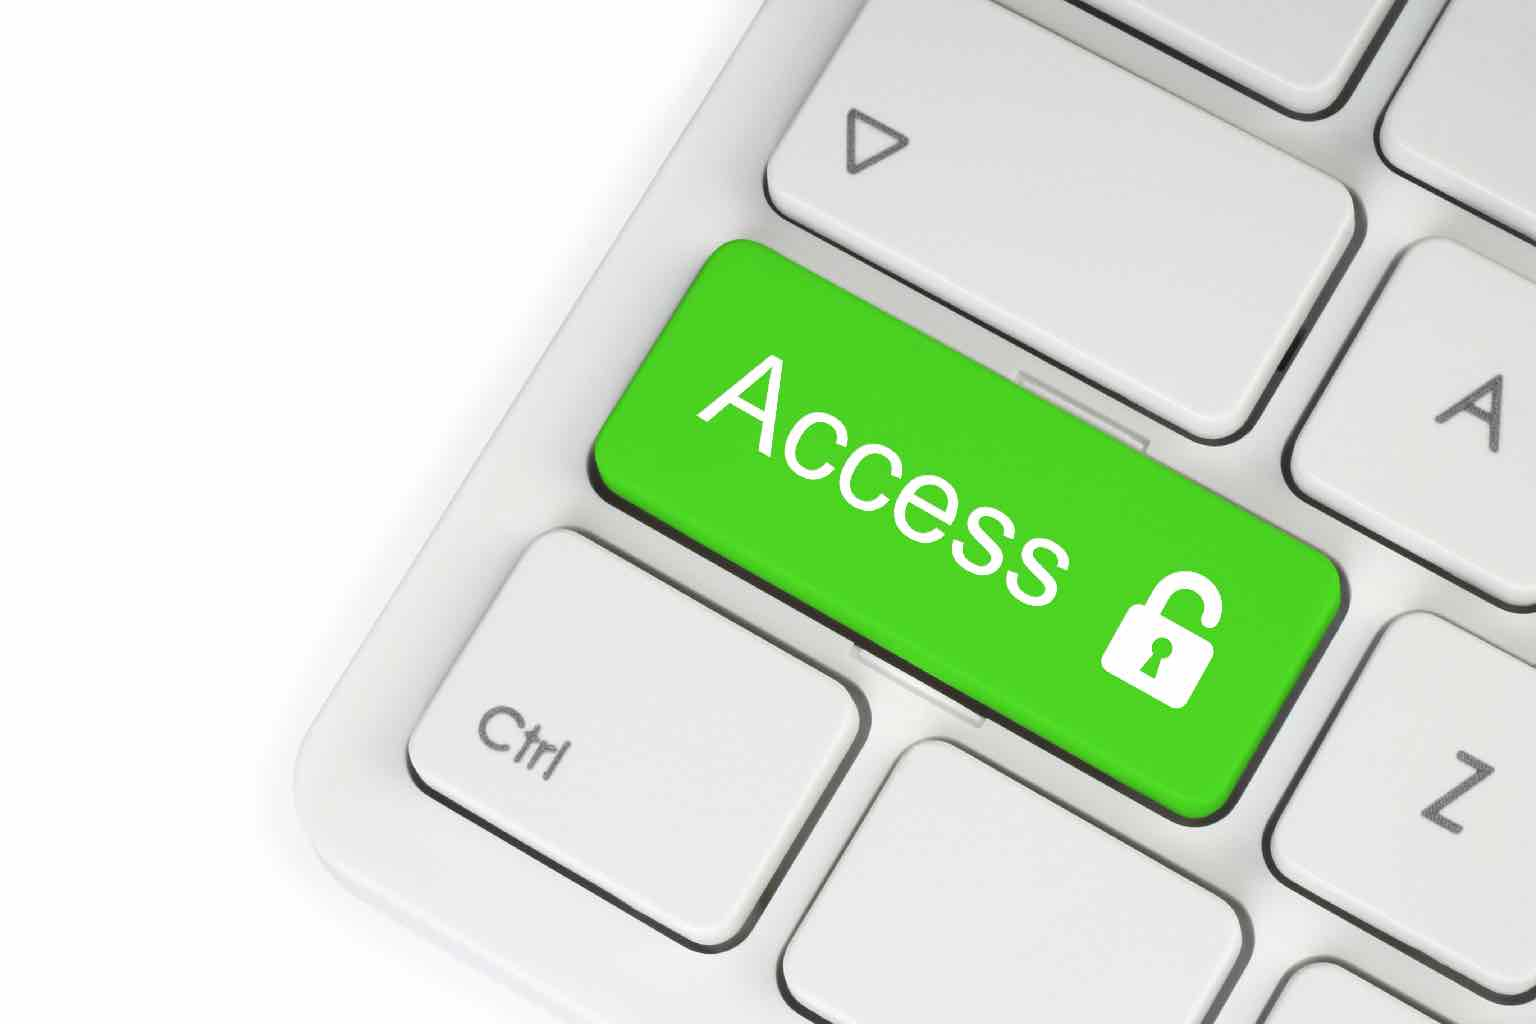 Open lock green button on the keyboard, access concept